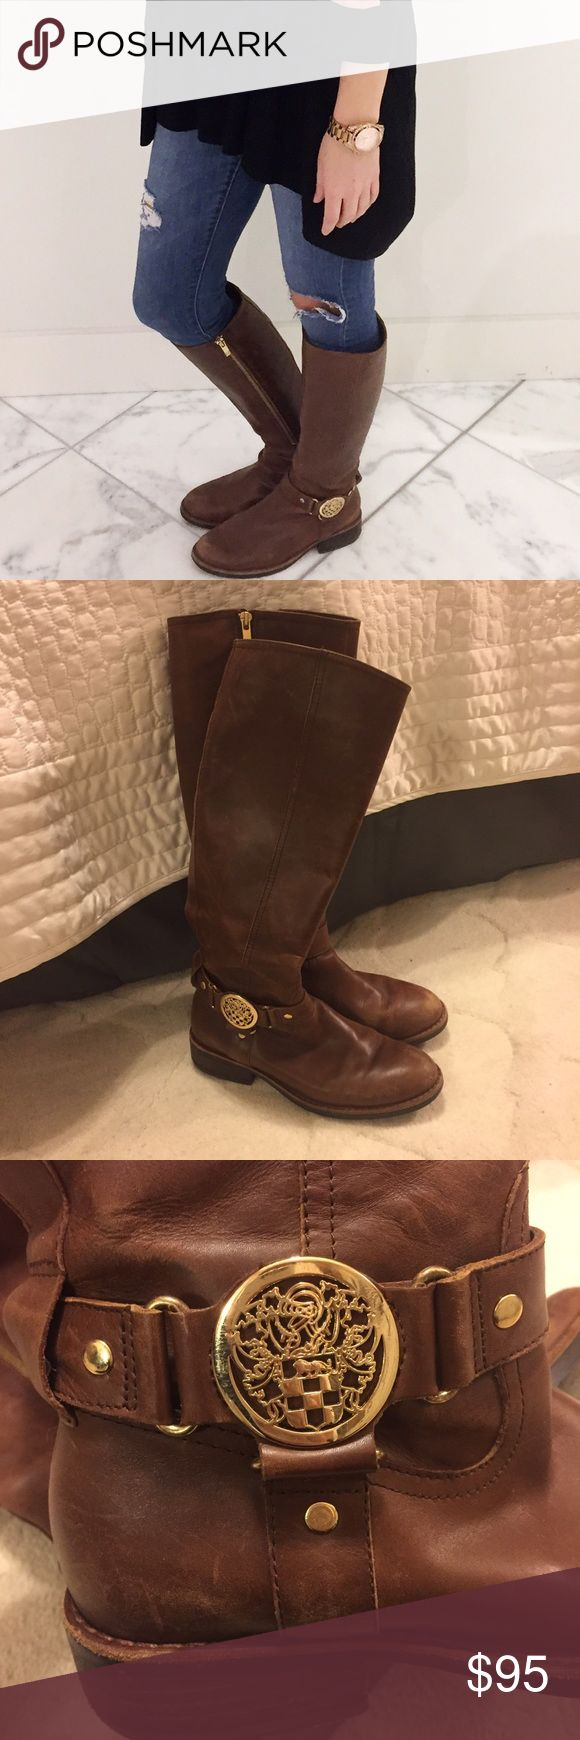 Vince Camuto Camel Riding Boots Gold zippers. Definitely worn but still good condition Vince Camuto Shoes Winter & Rain Boots